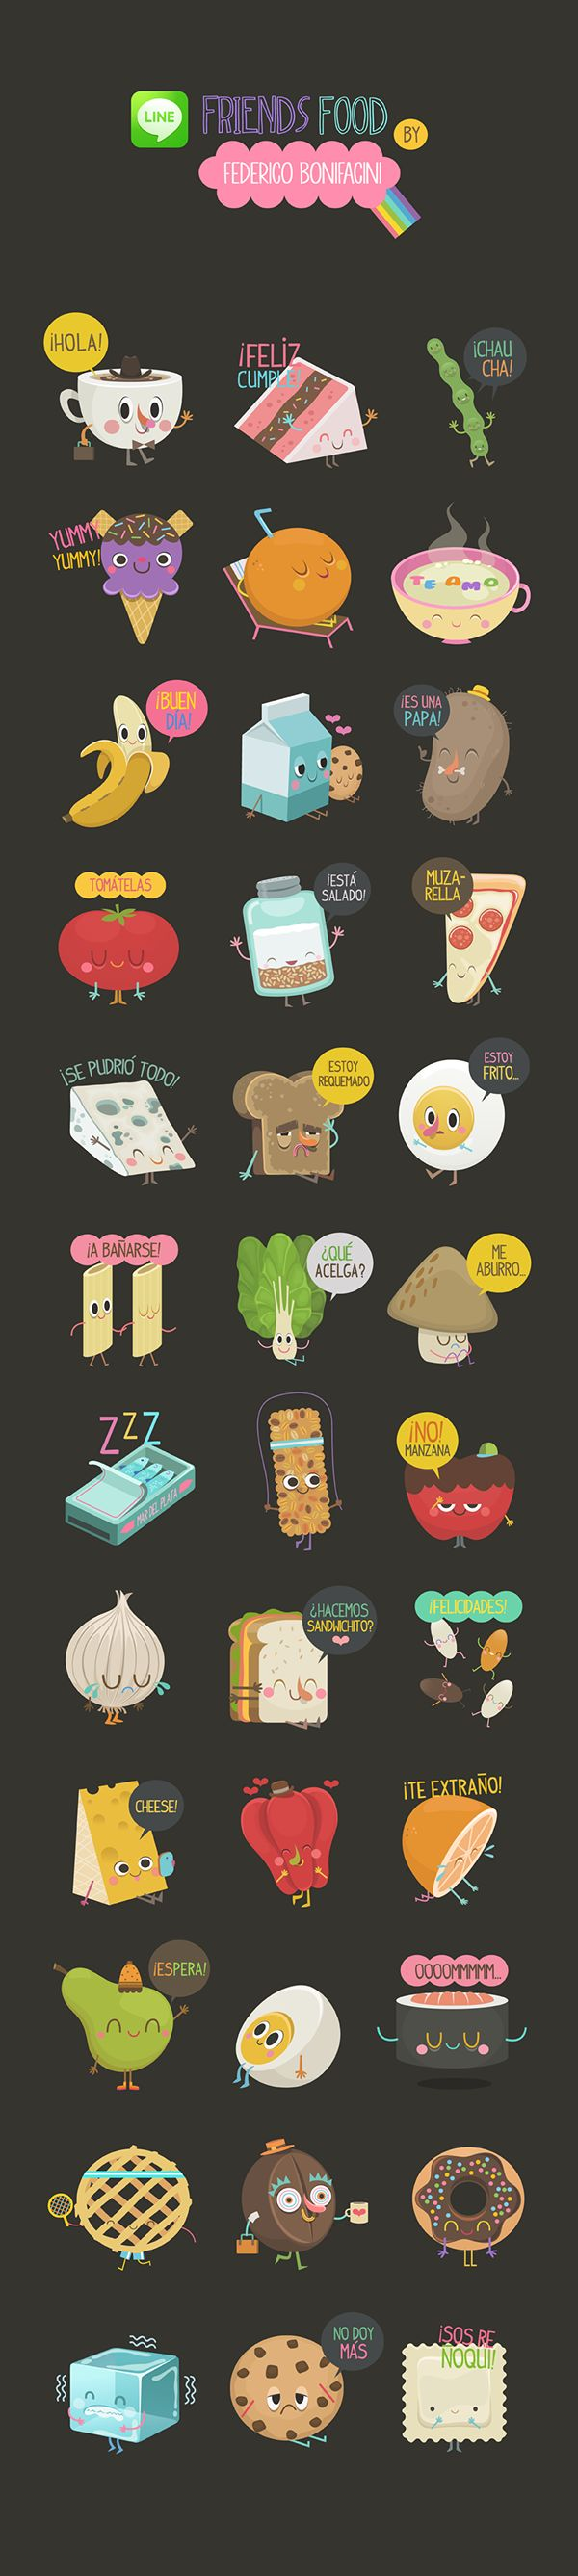 FRIENDS FOOD Line Stickers on Behance by Federico Bonifacini